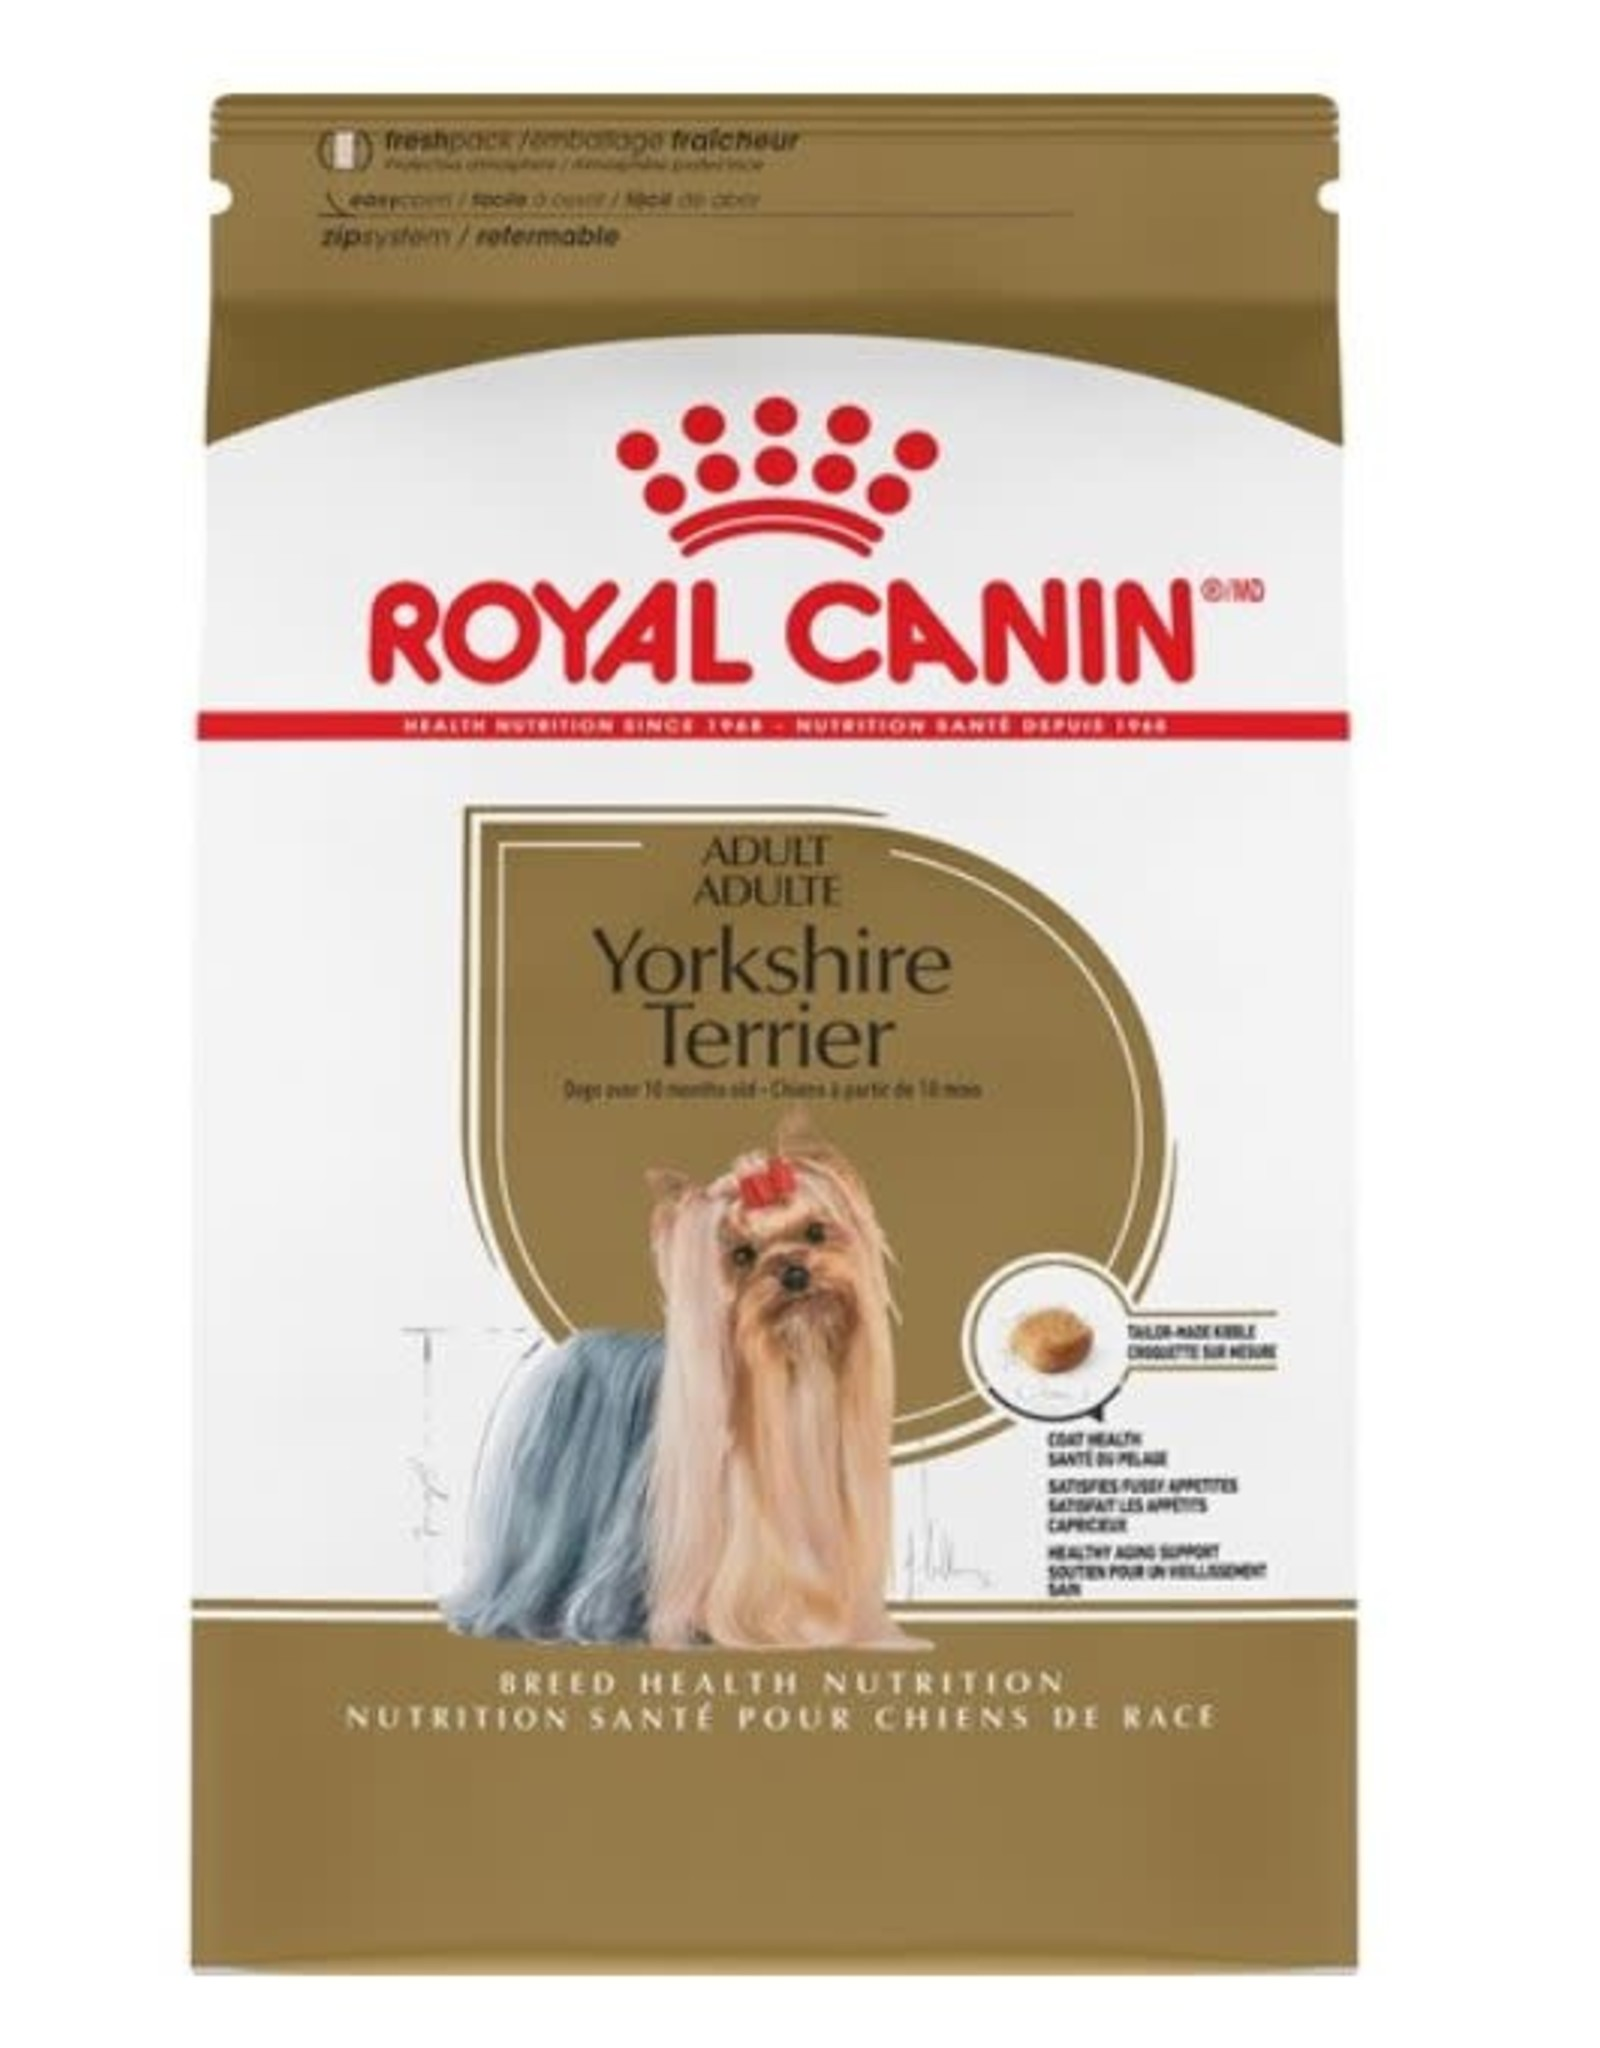 Royal Canin Royal Canin Yorkshire Terrier